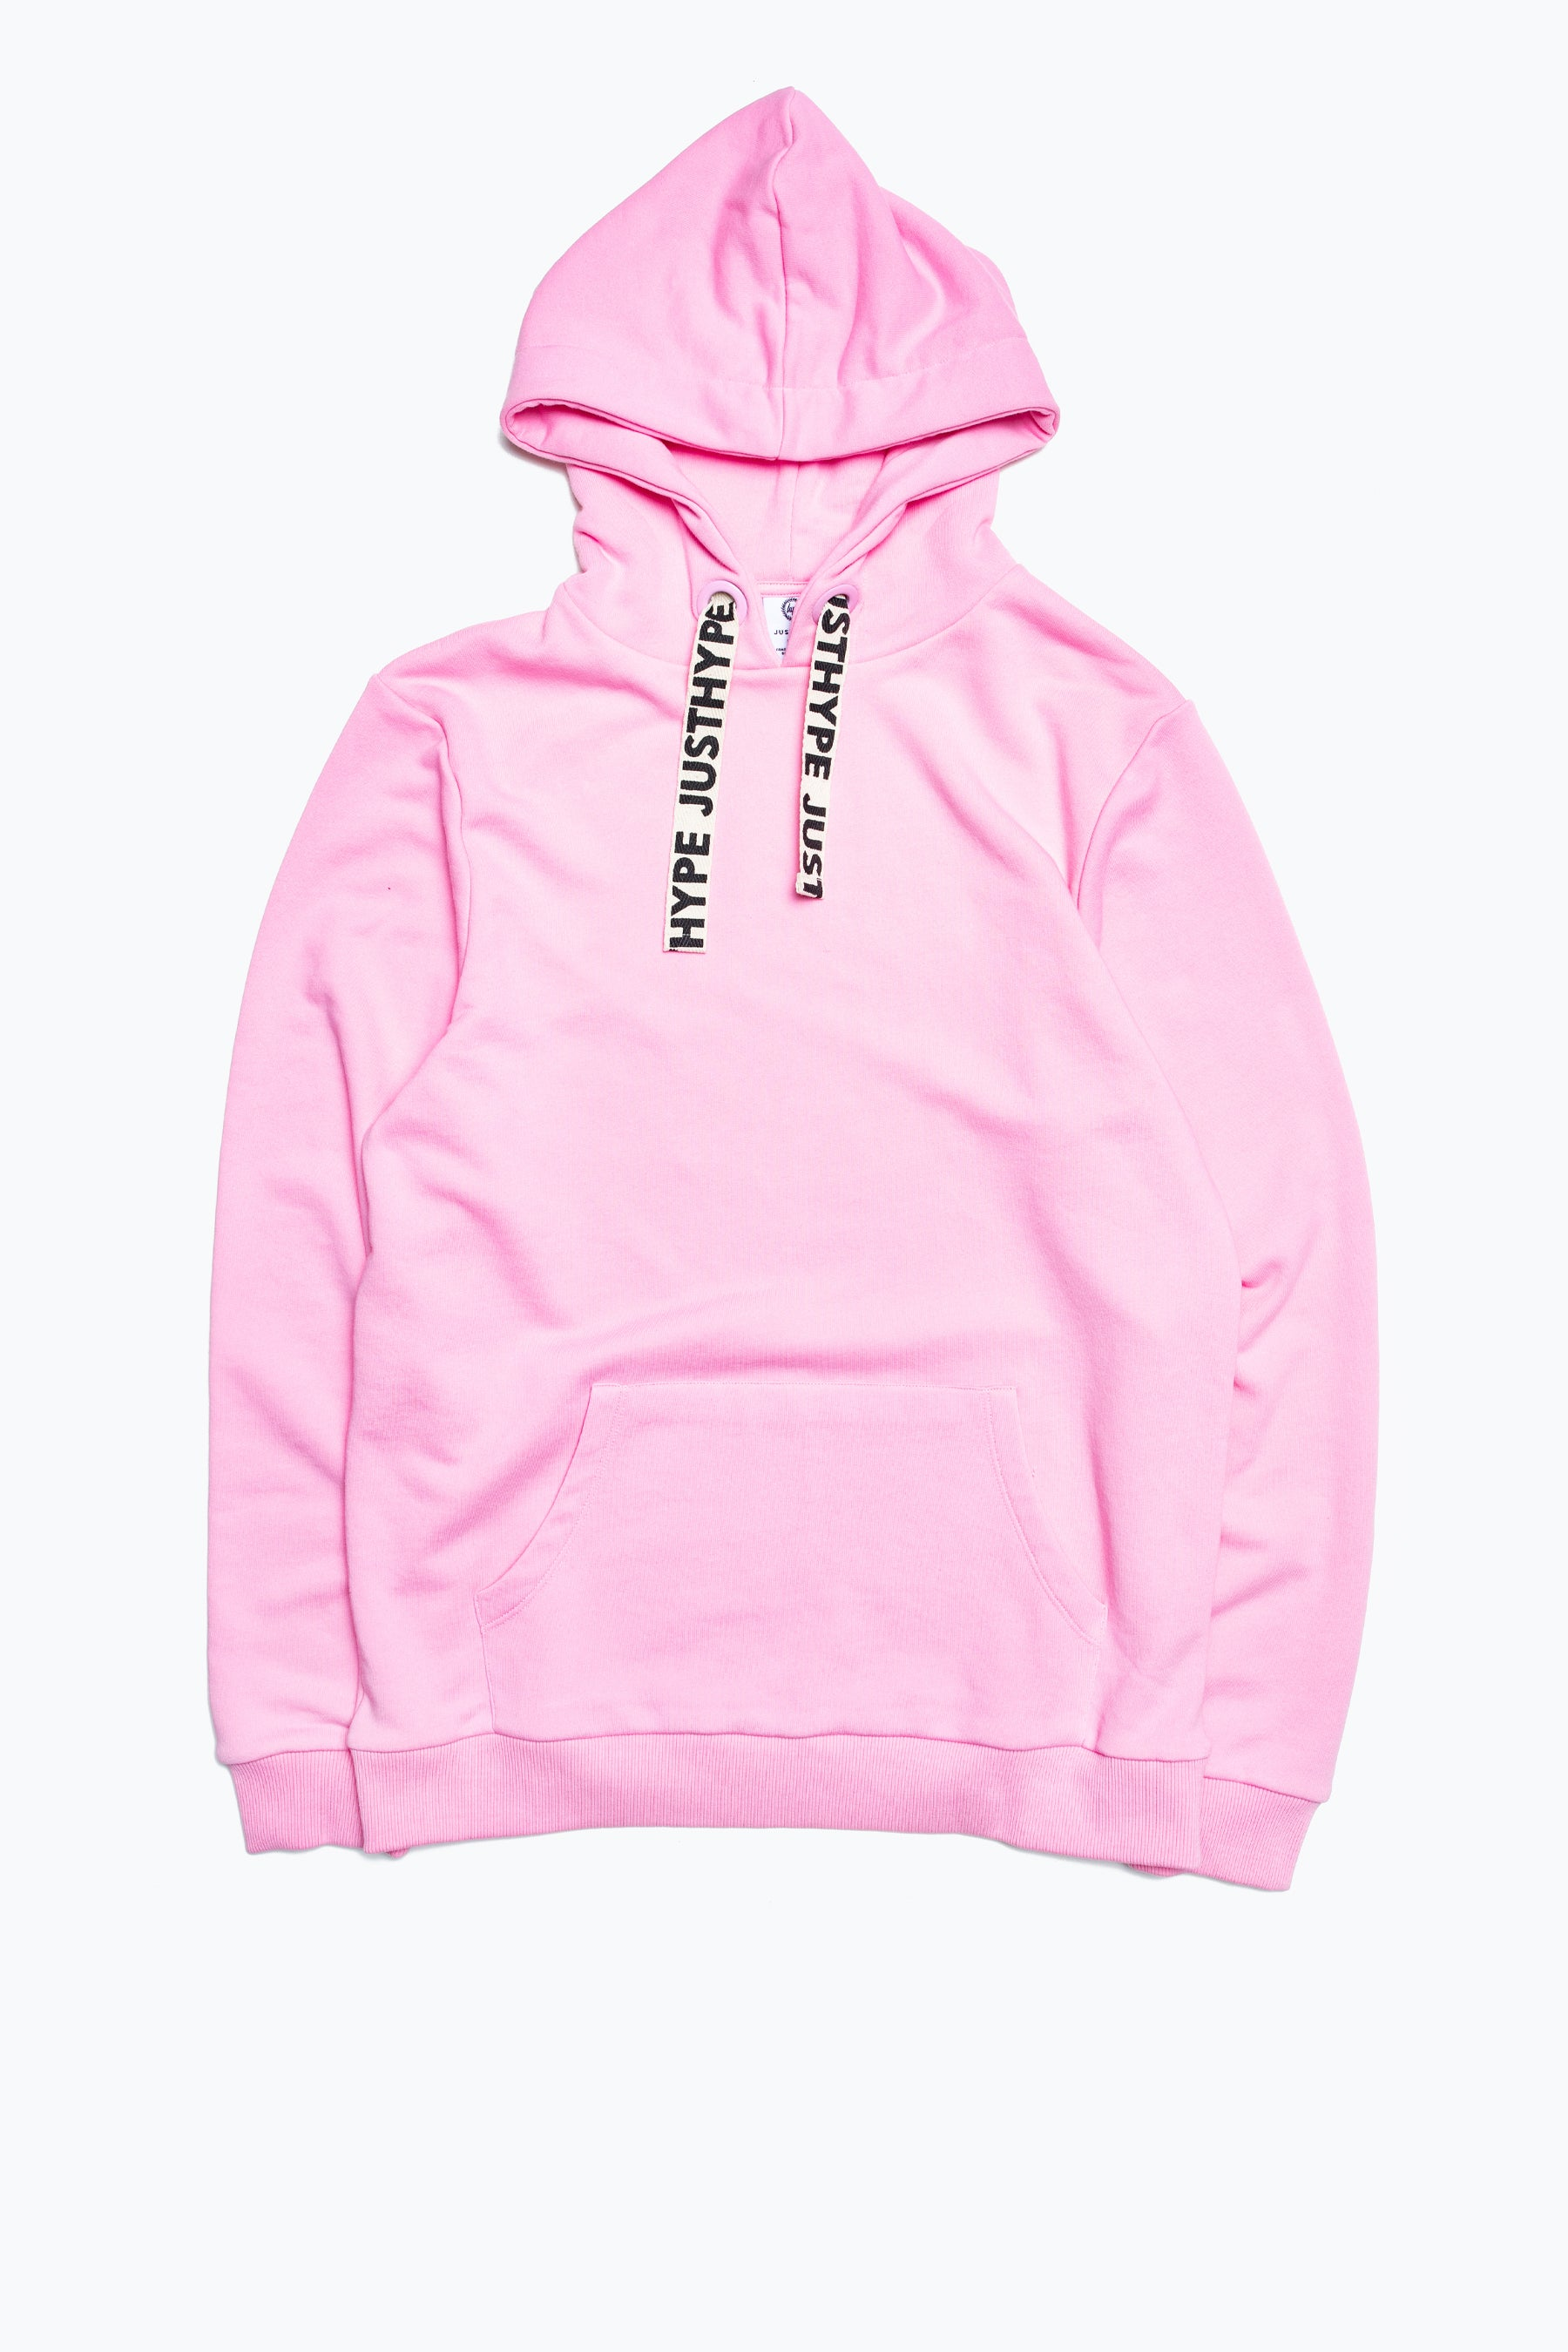 Hype Pink Drawcord Women's Pullover Hoodie | Size 22